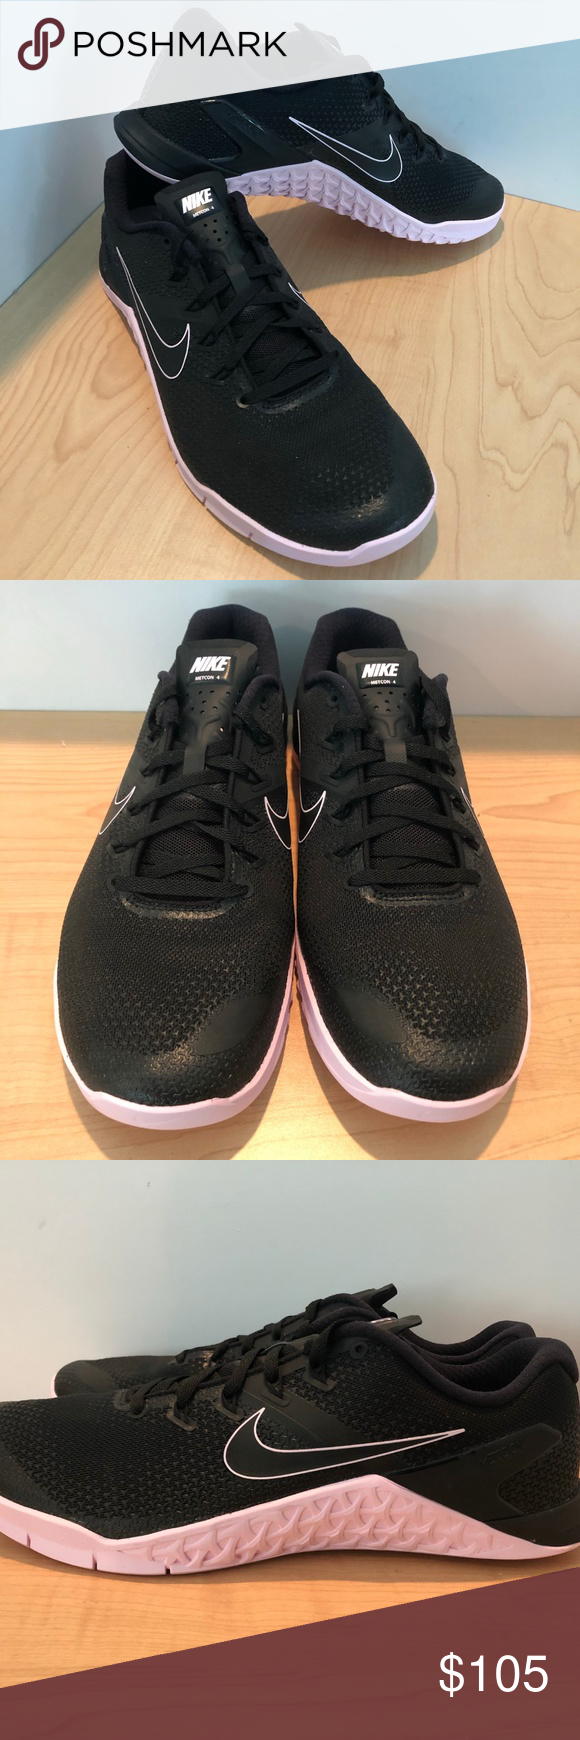 Nike Metcon 4 CrossFit/Athletic Shoes